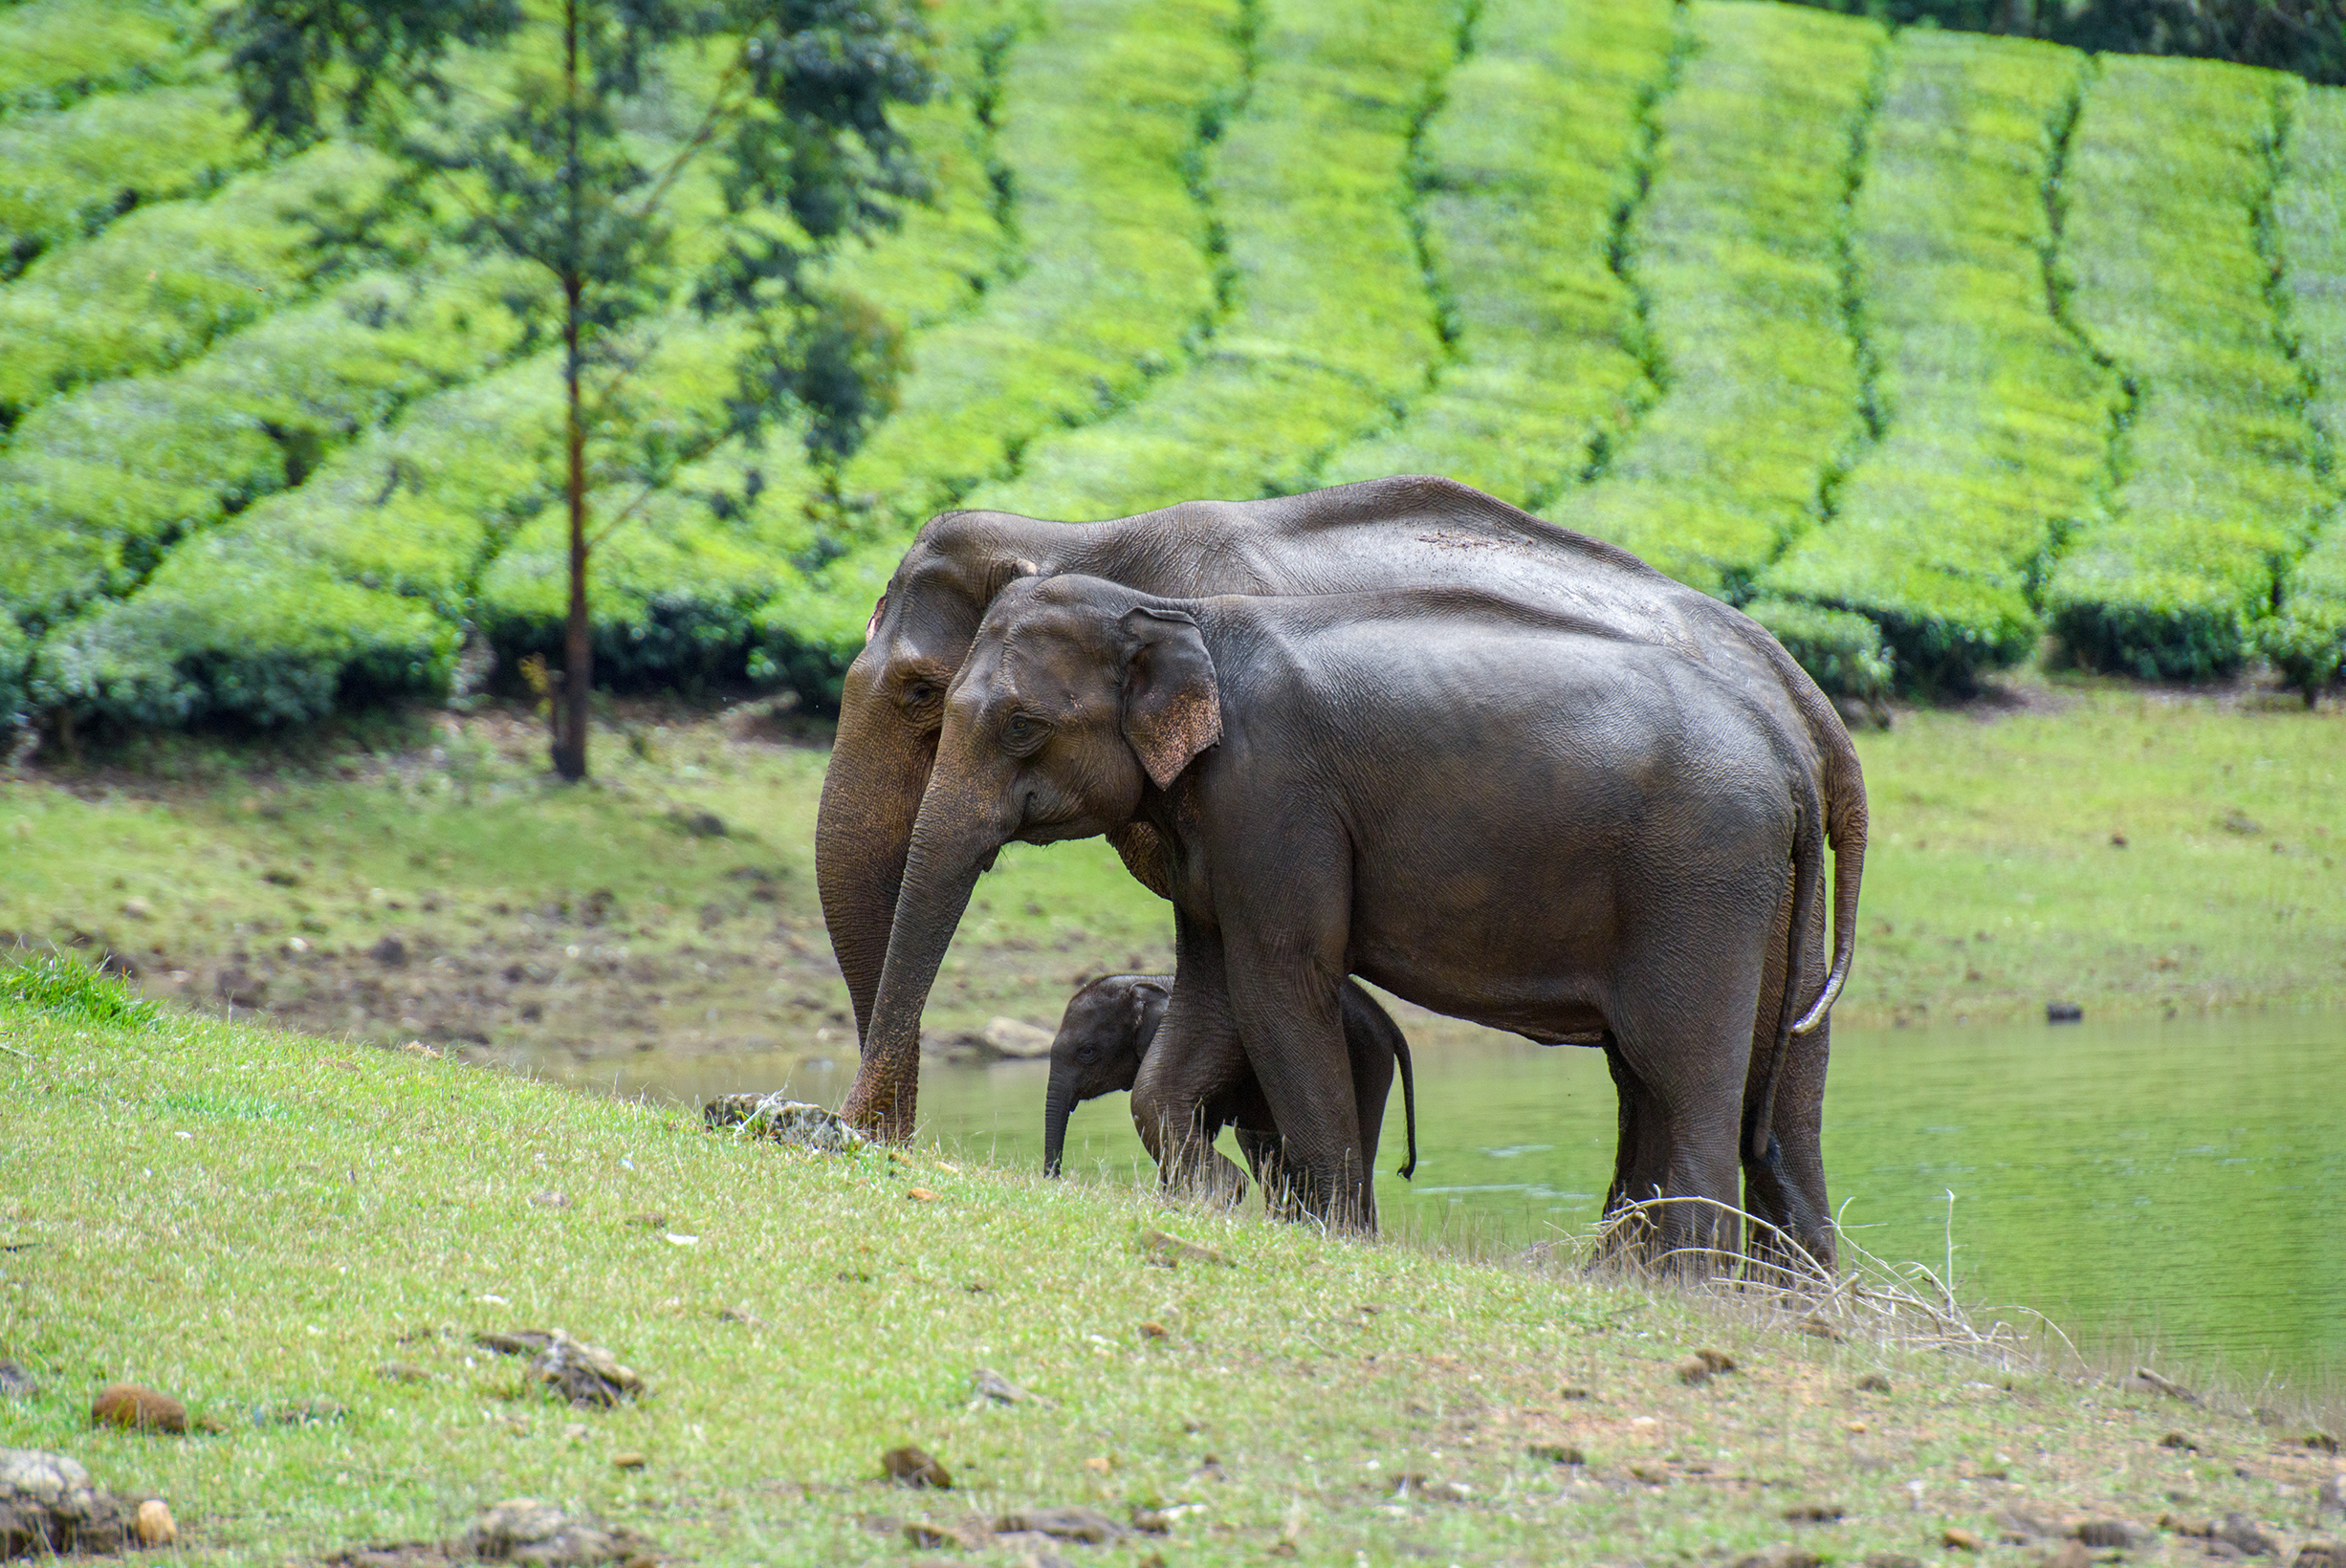 Best places to see elephants with your family in India